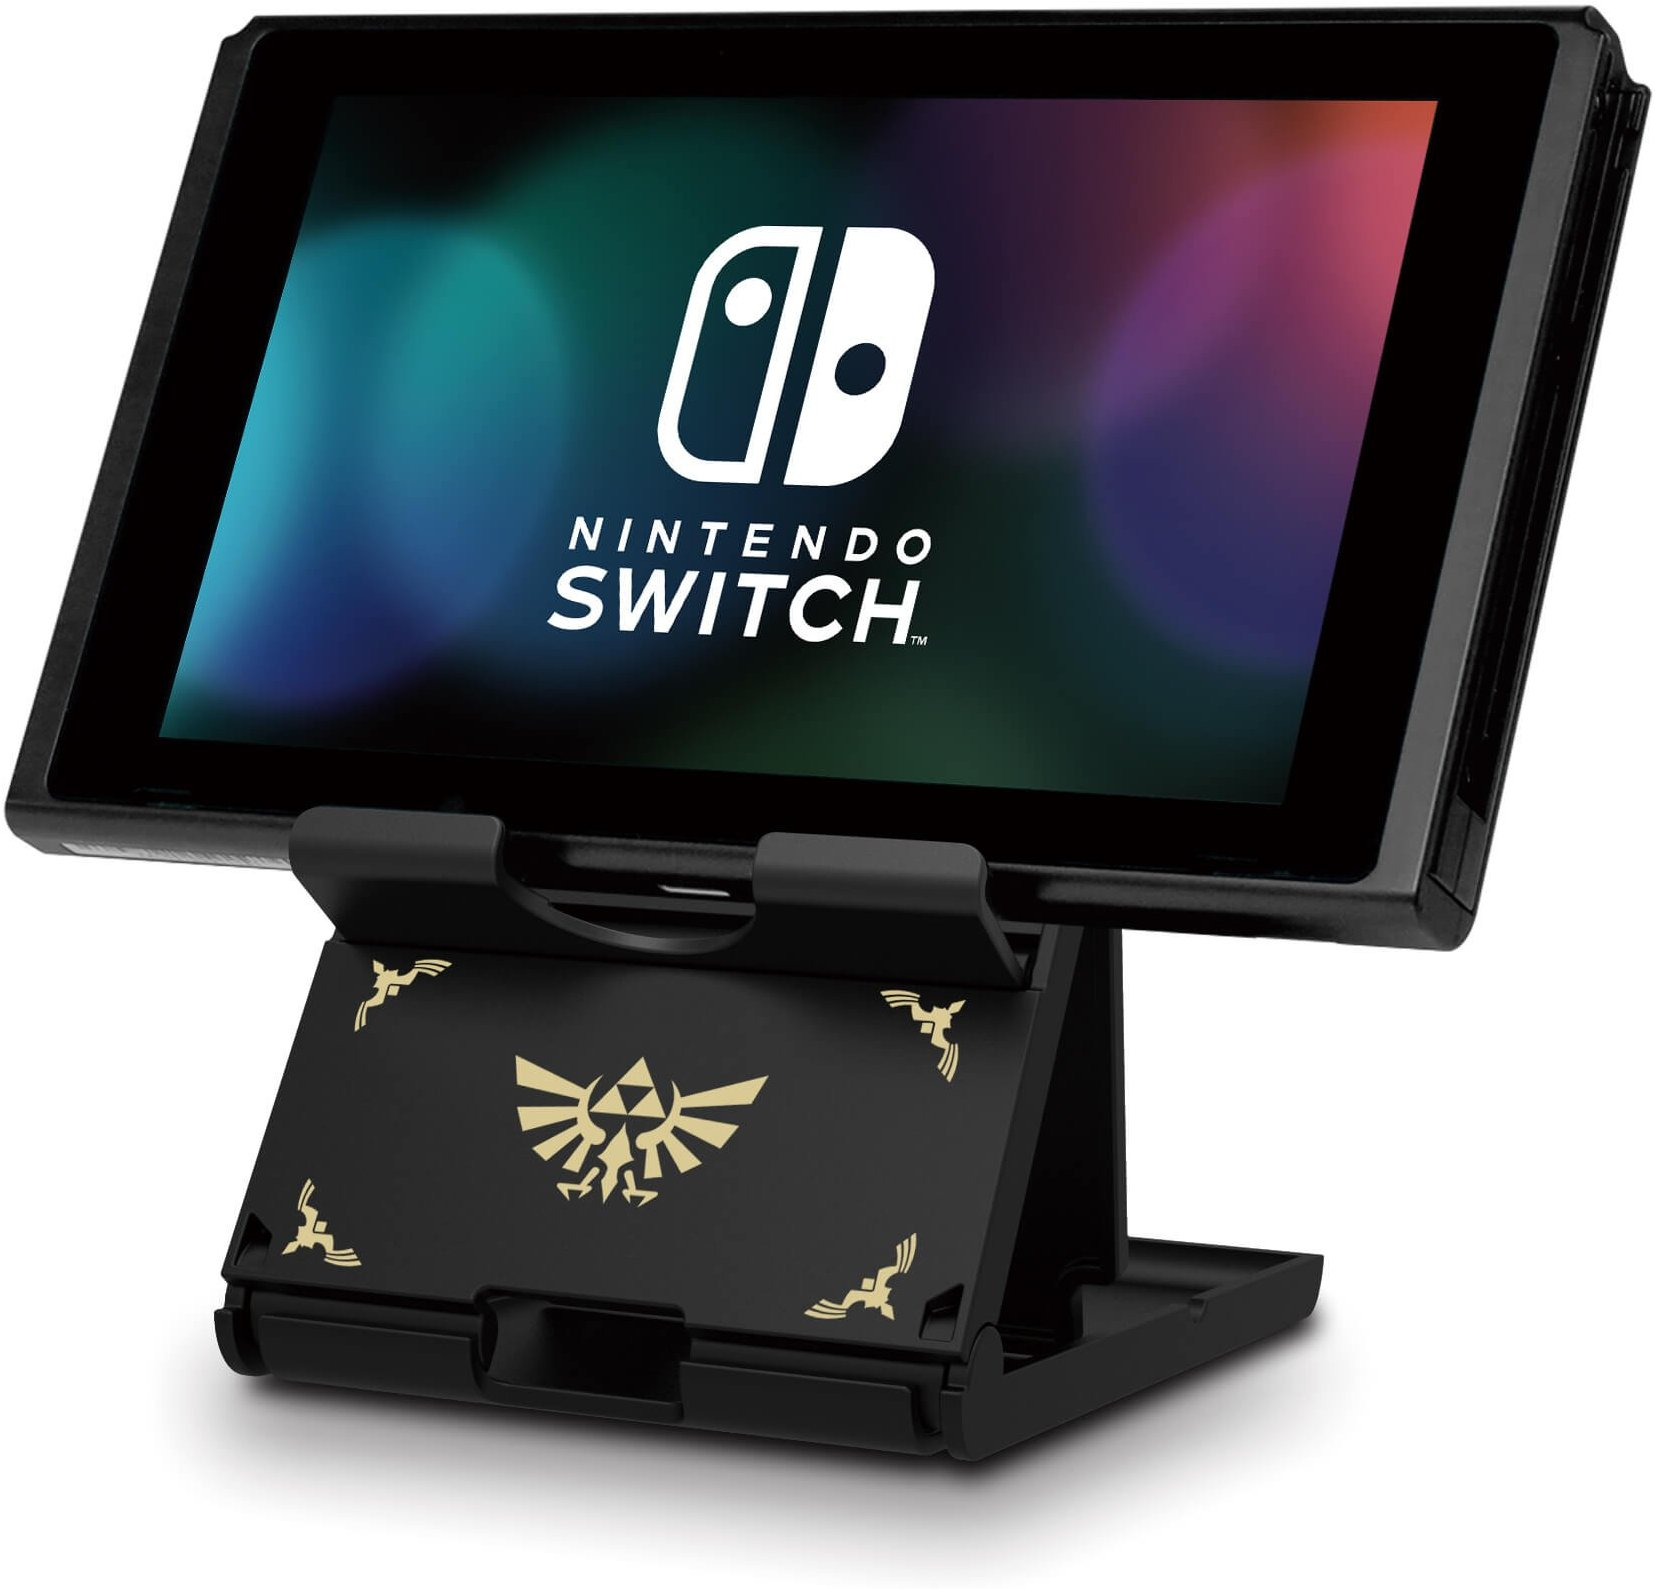 New Zelda and Mario Switch stands listed for release next